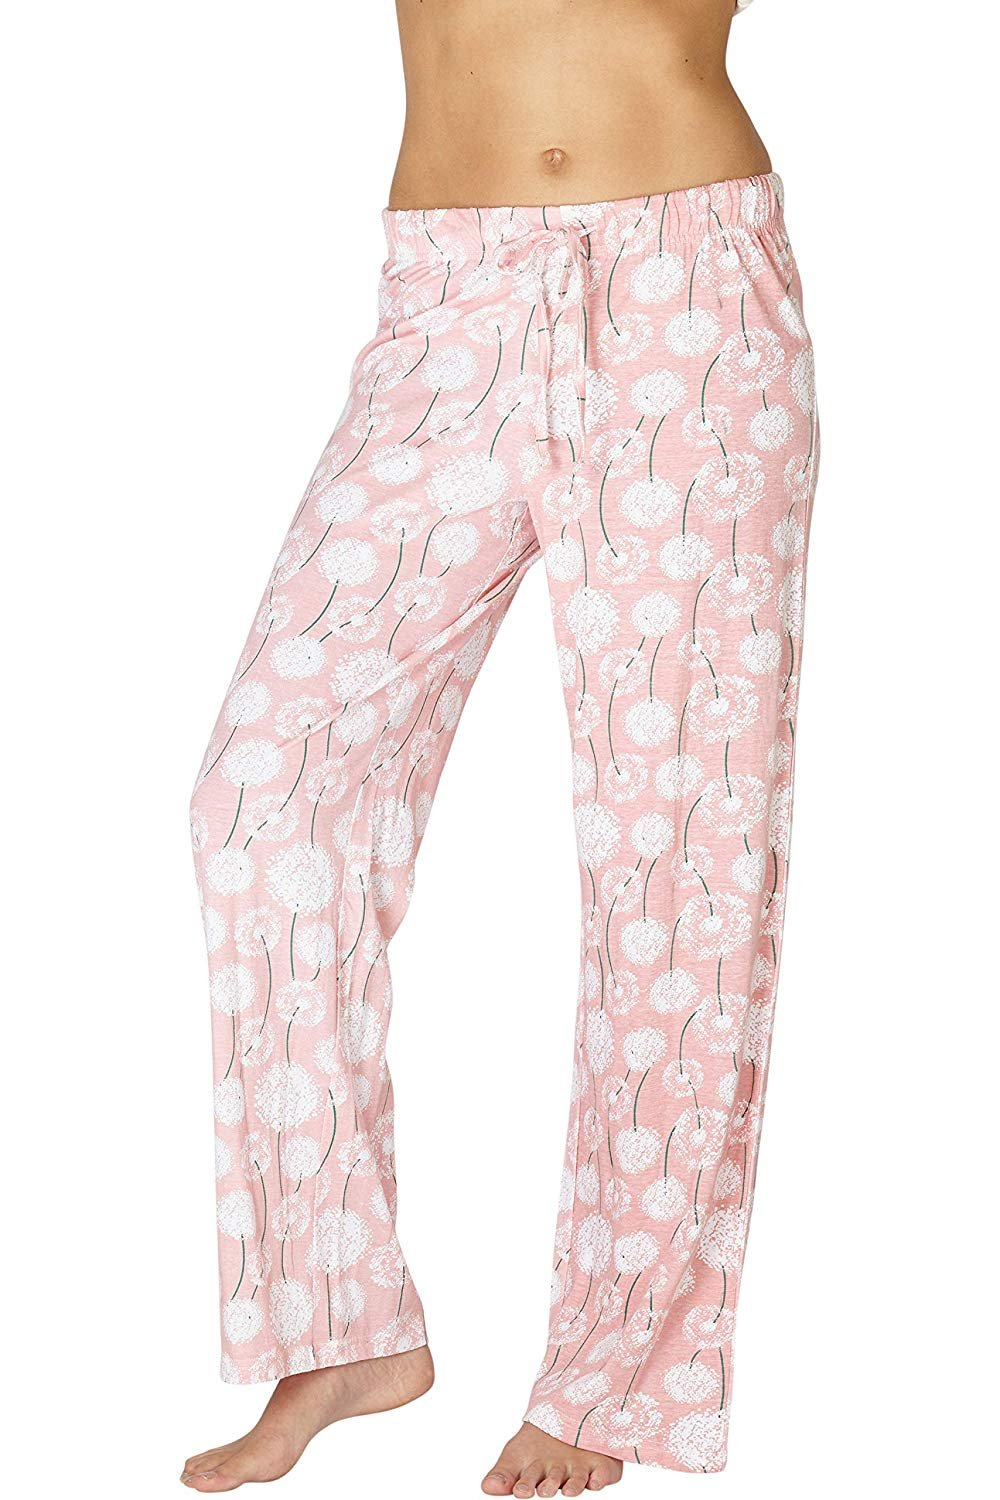 d26750b652d Intimo Women's Comfy Printed Flowers Cotton Sleep Pant, Multicolored, –  Intimo Inc